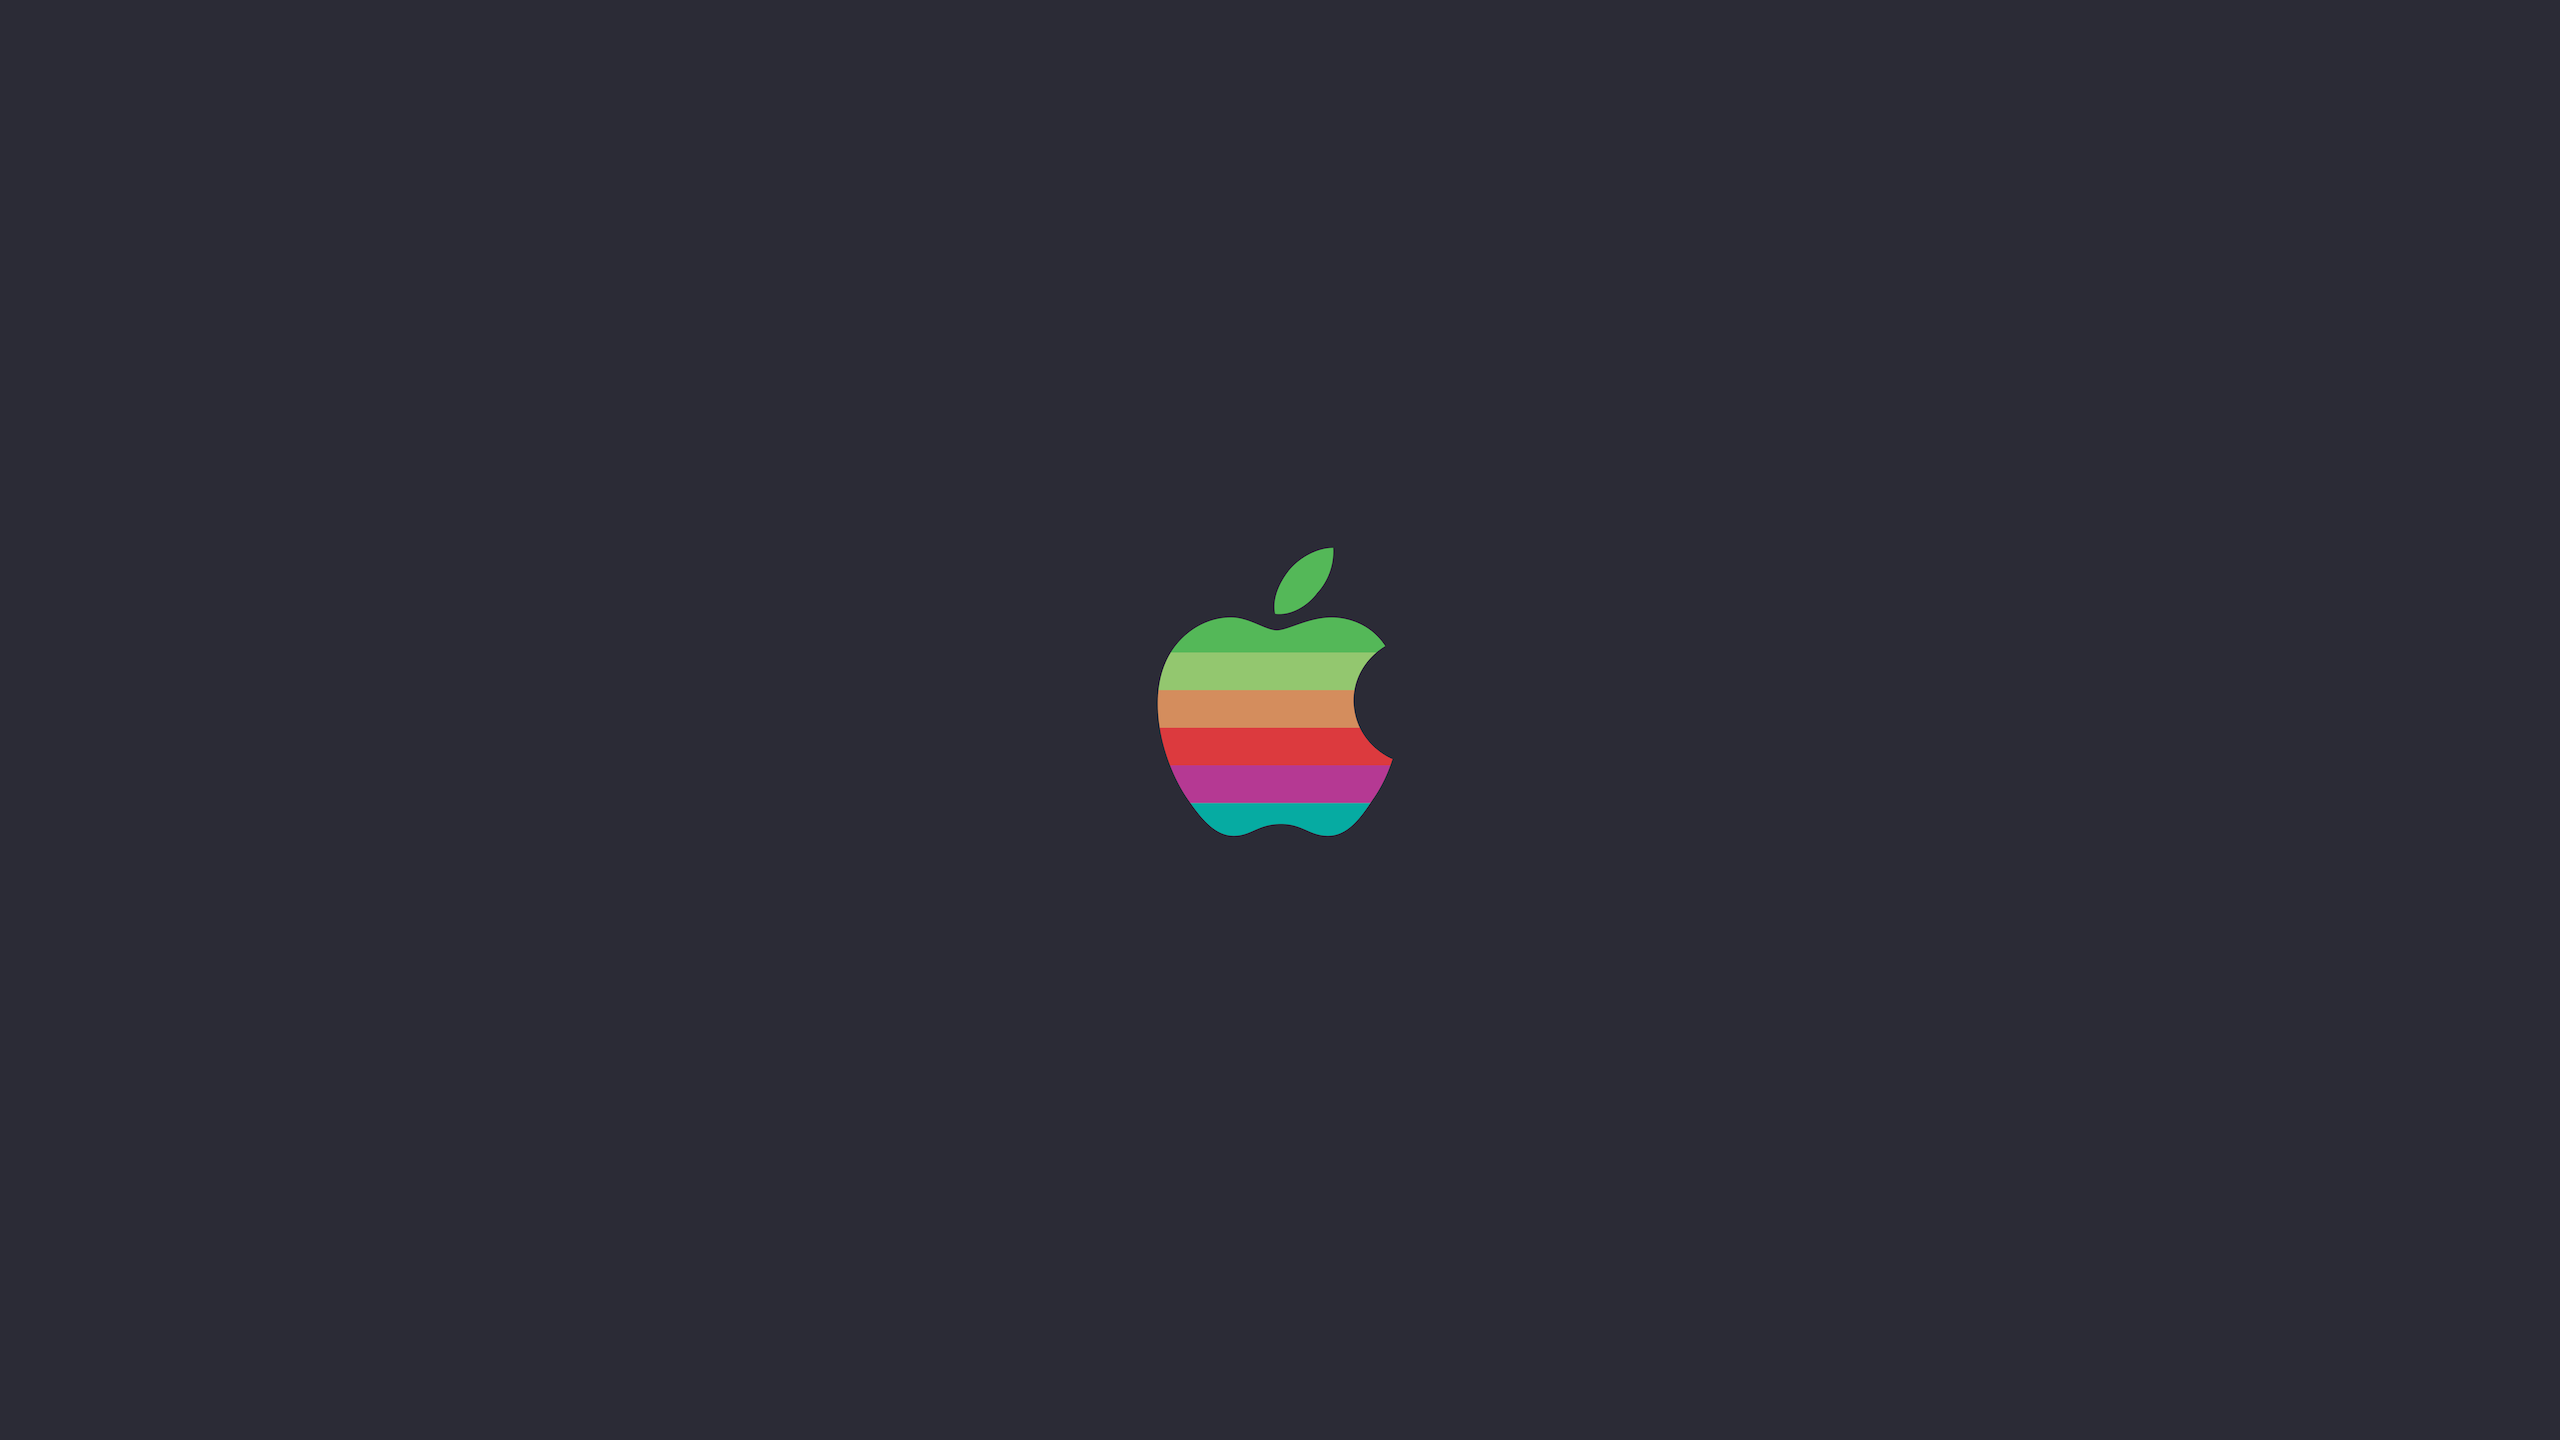 Retro Apple Logo WWDC 2016 wallpapers 2560x1440